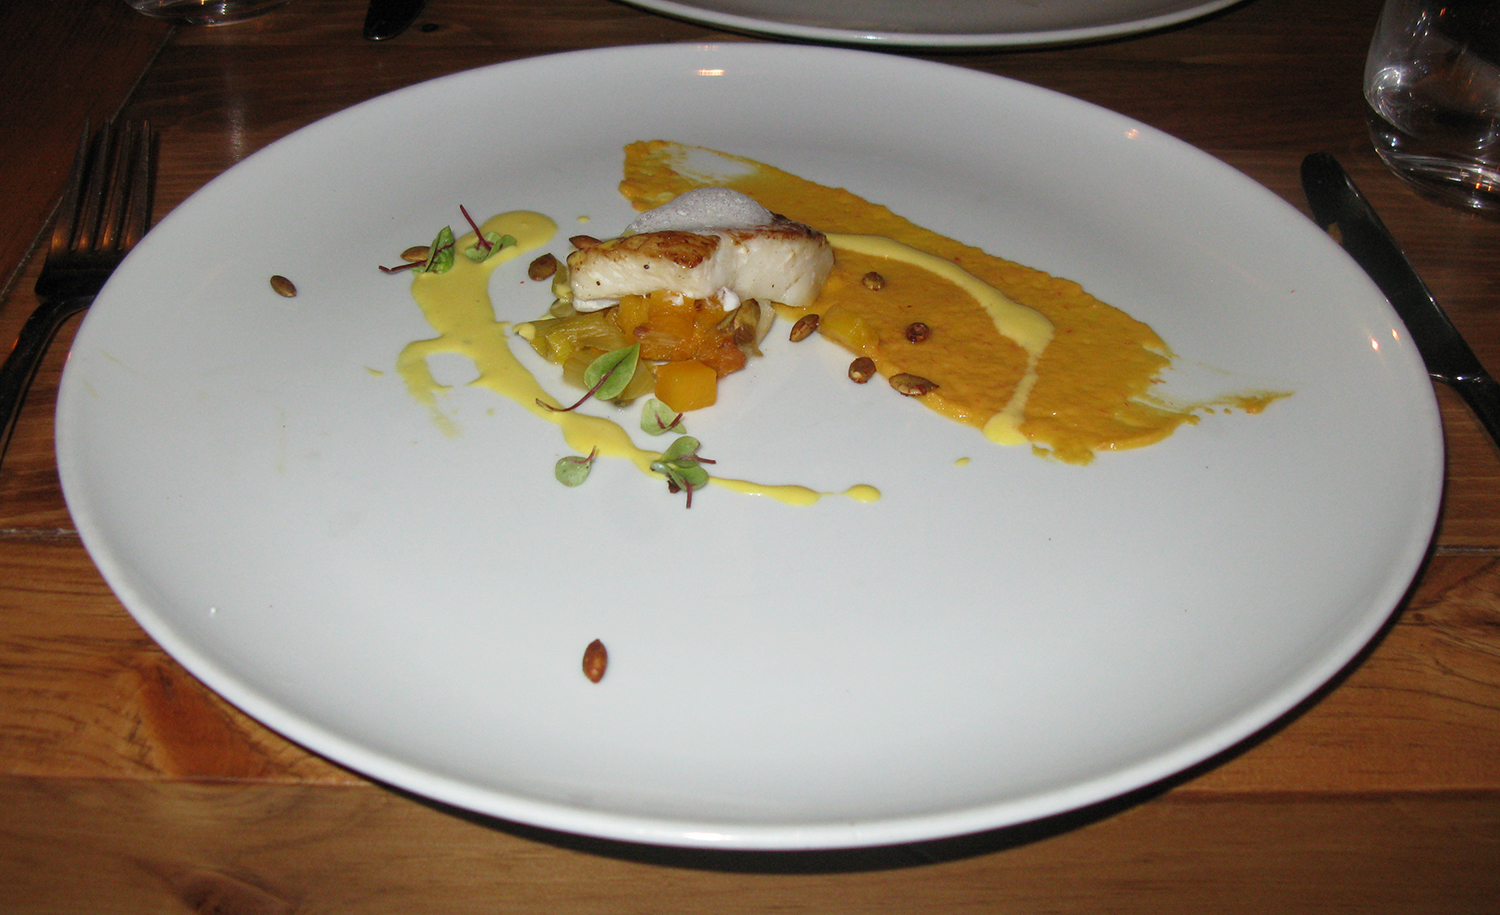 Pan-seared and steamed whiting fish with leeks, pumpkin seeds, saffron foam, saffron reduction, and butternut squash prepared two ways